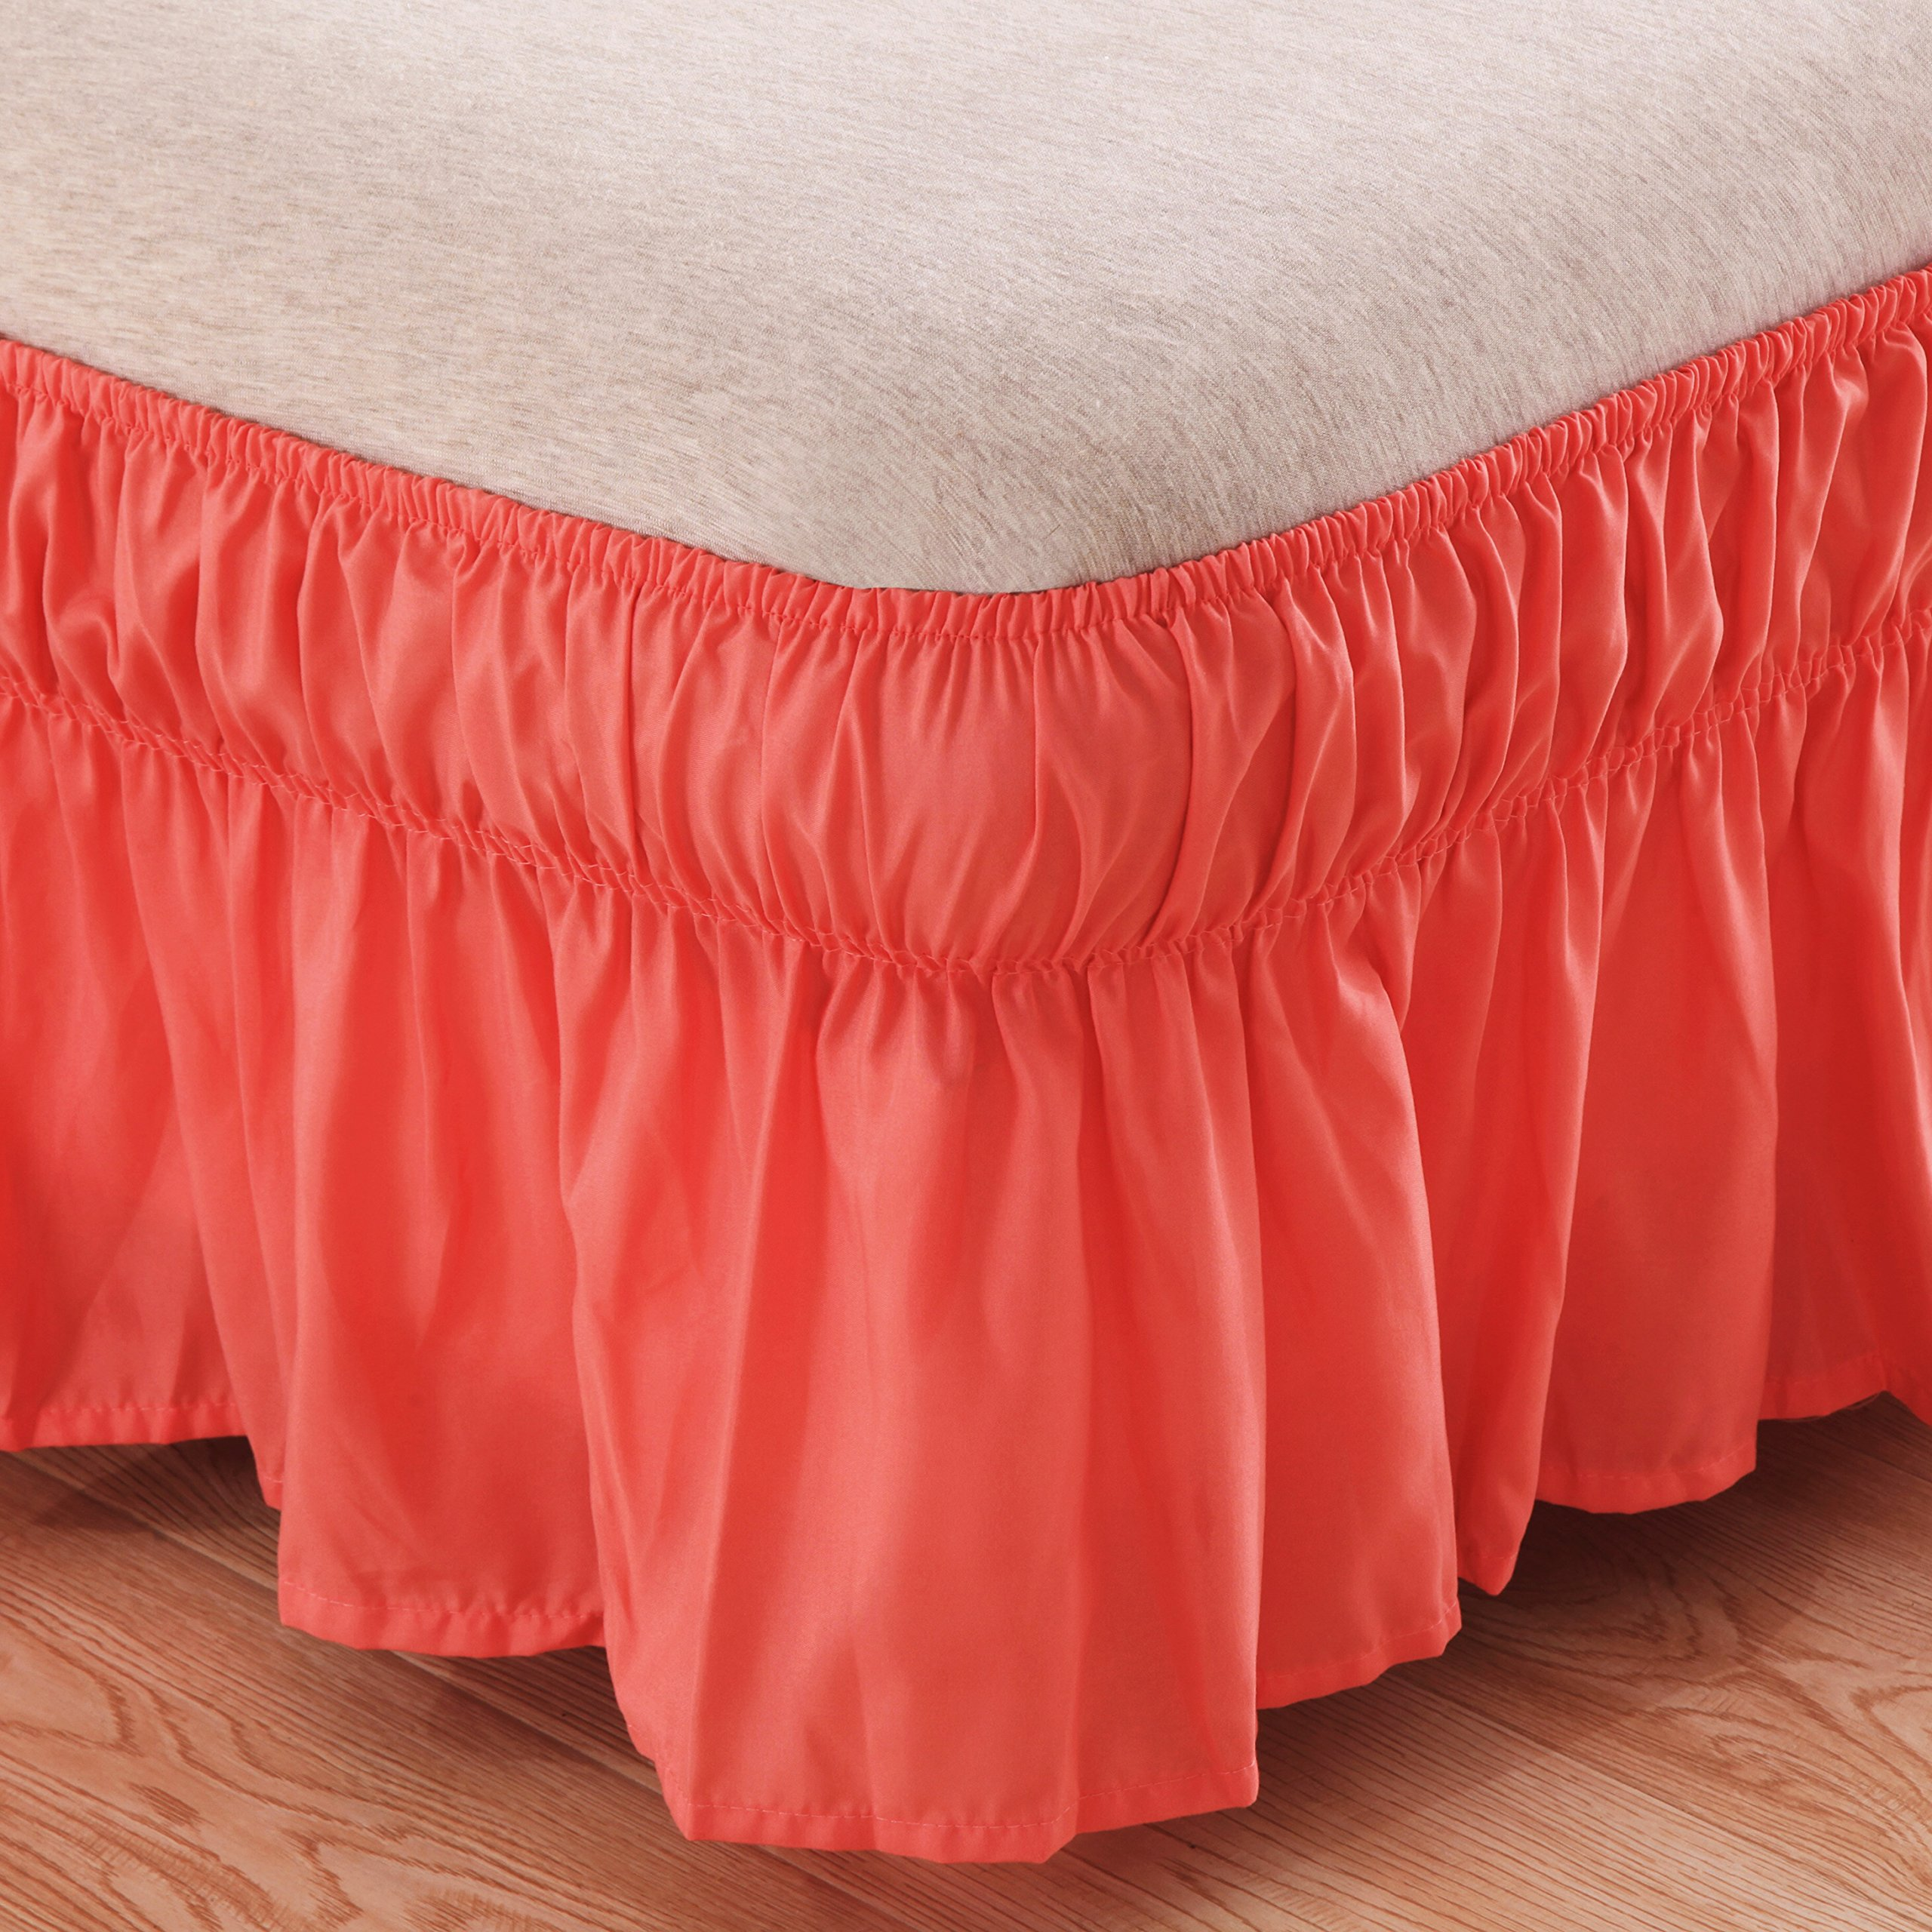 AYASW Bed Skirt-16 Inch Drop Dust Ruffle Three Fabric Sides Wrap Around Ruffled (Queen/King Coral) Brushed Microfiber Adjustable Elastic Easy Fit